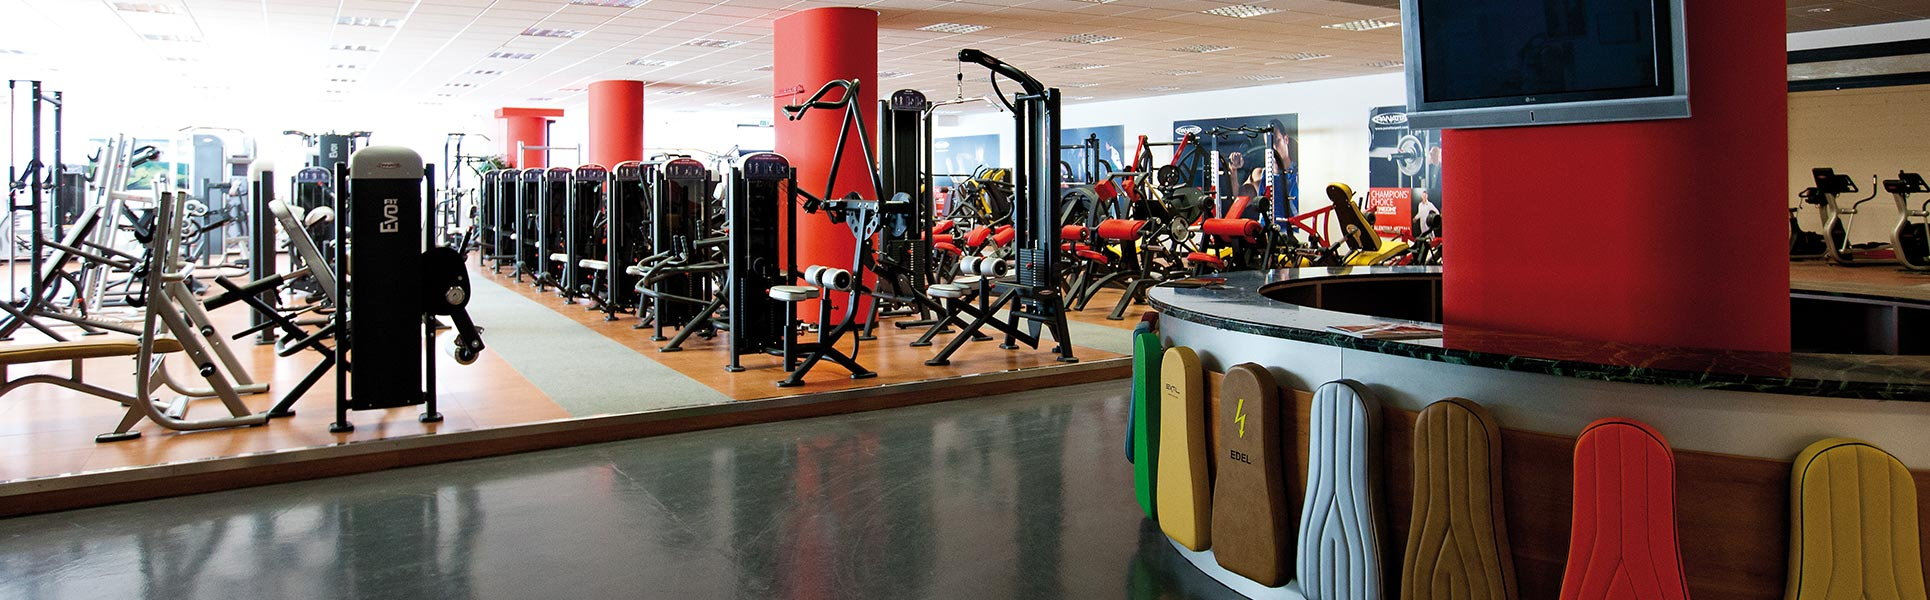 Commercial Gym Equipment 2